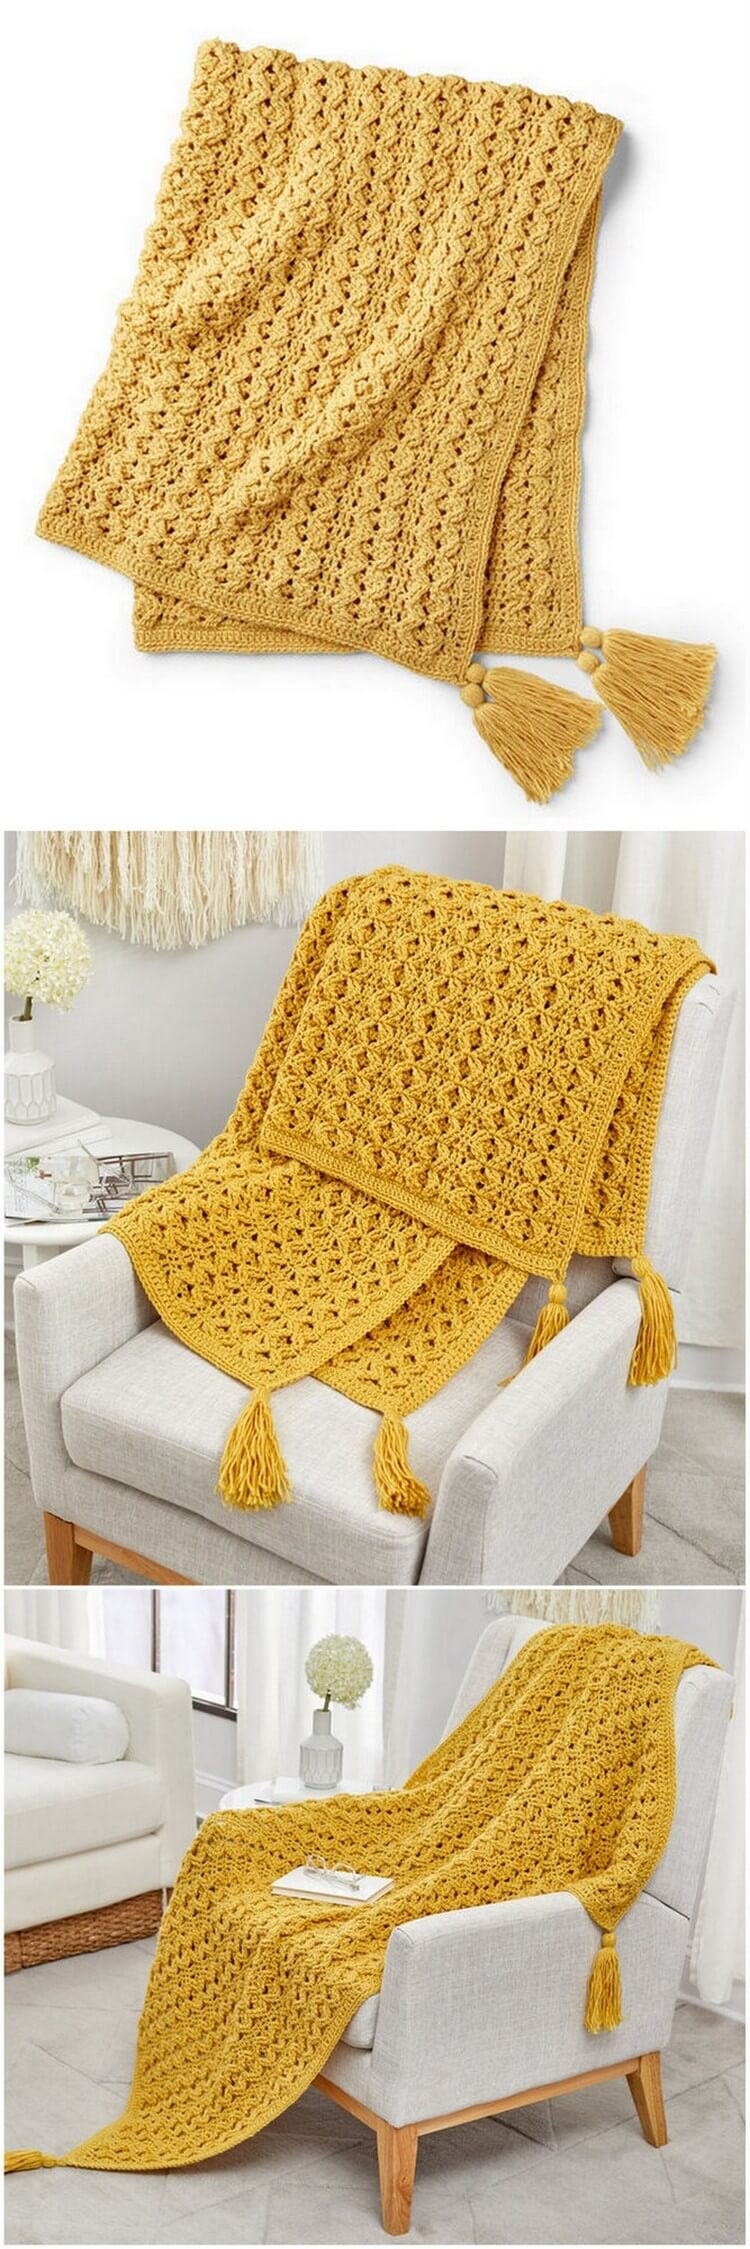 Crochet Blanket Pattern (37)